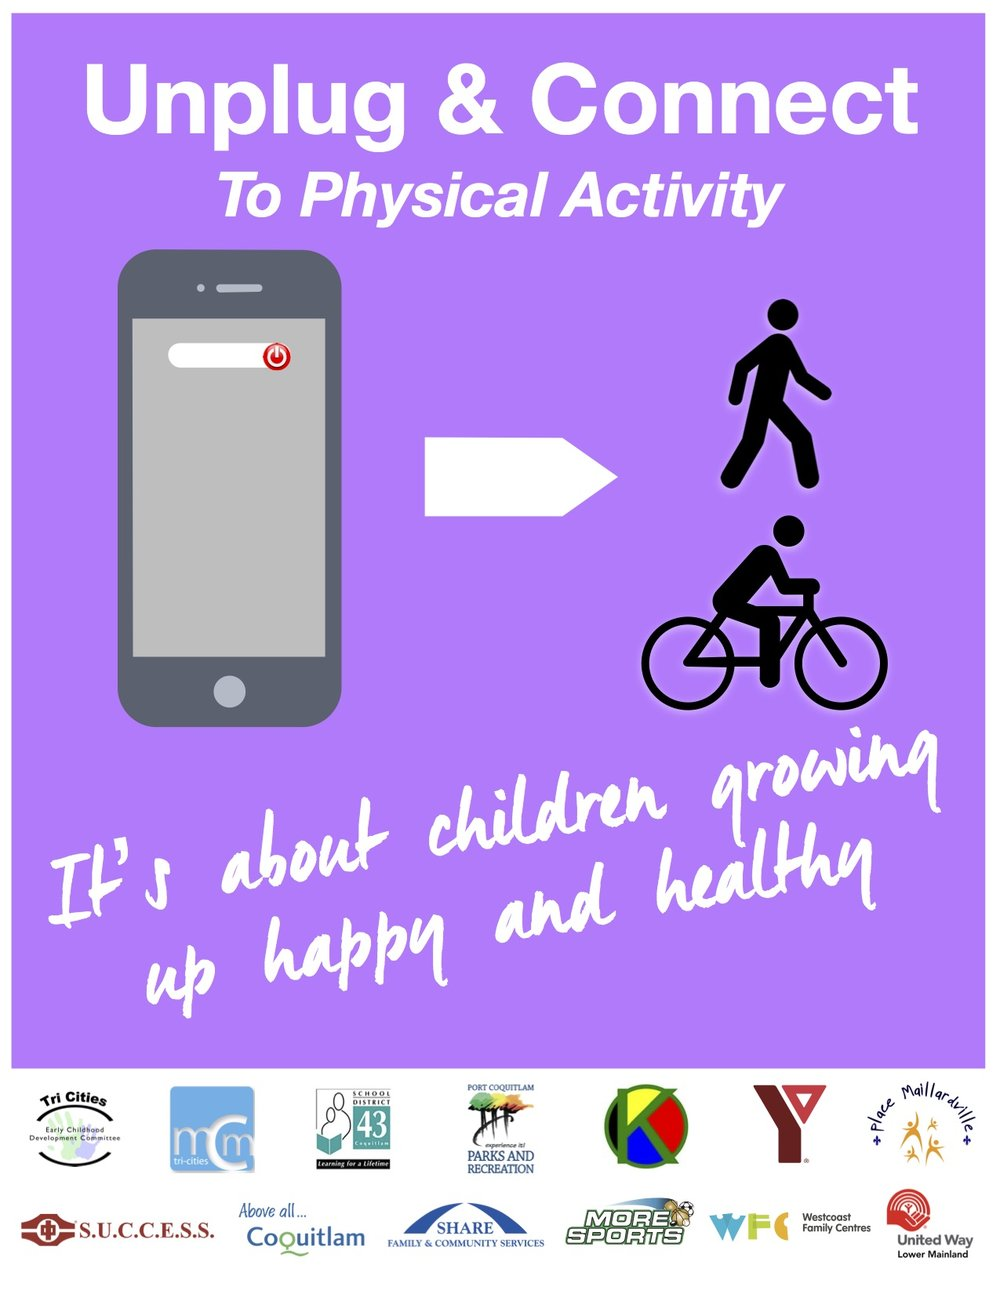 Click  here  to learn more about the importance of connecting to physical activity.